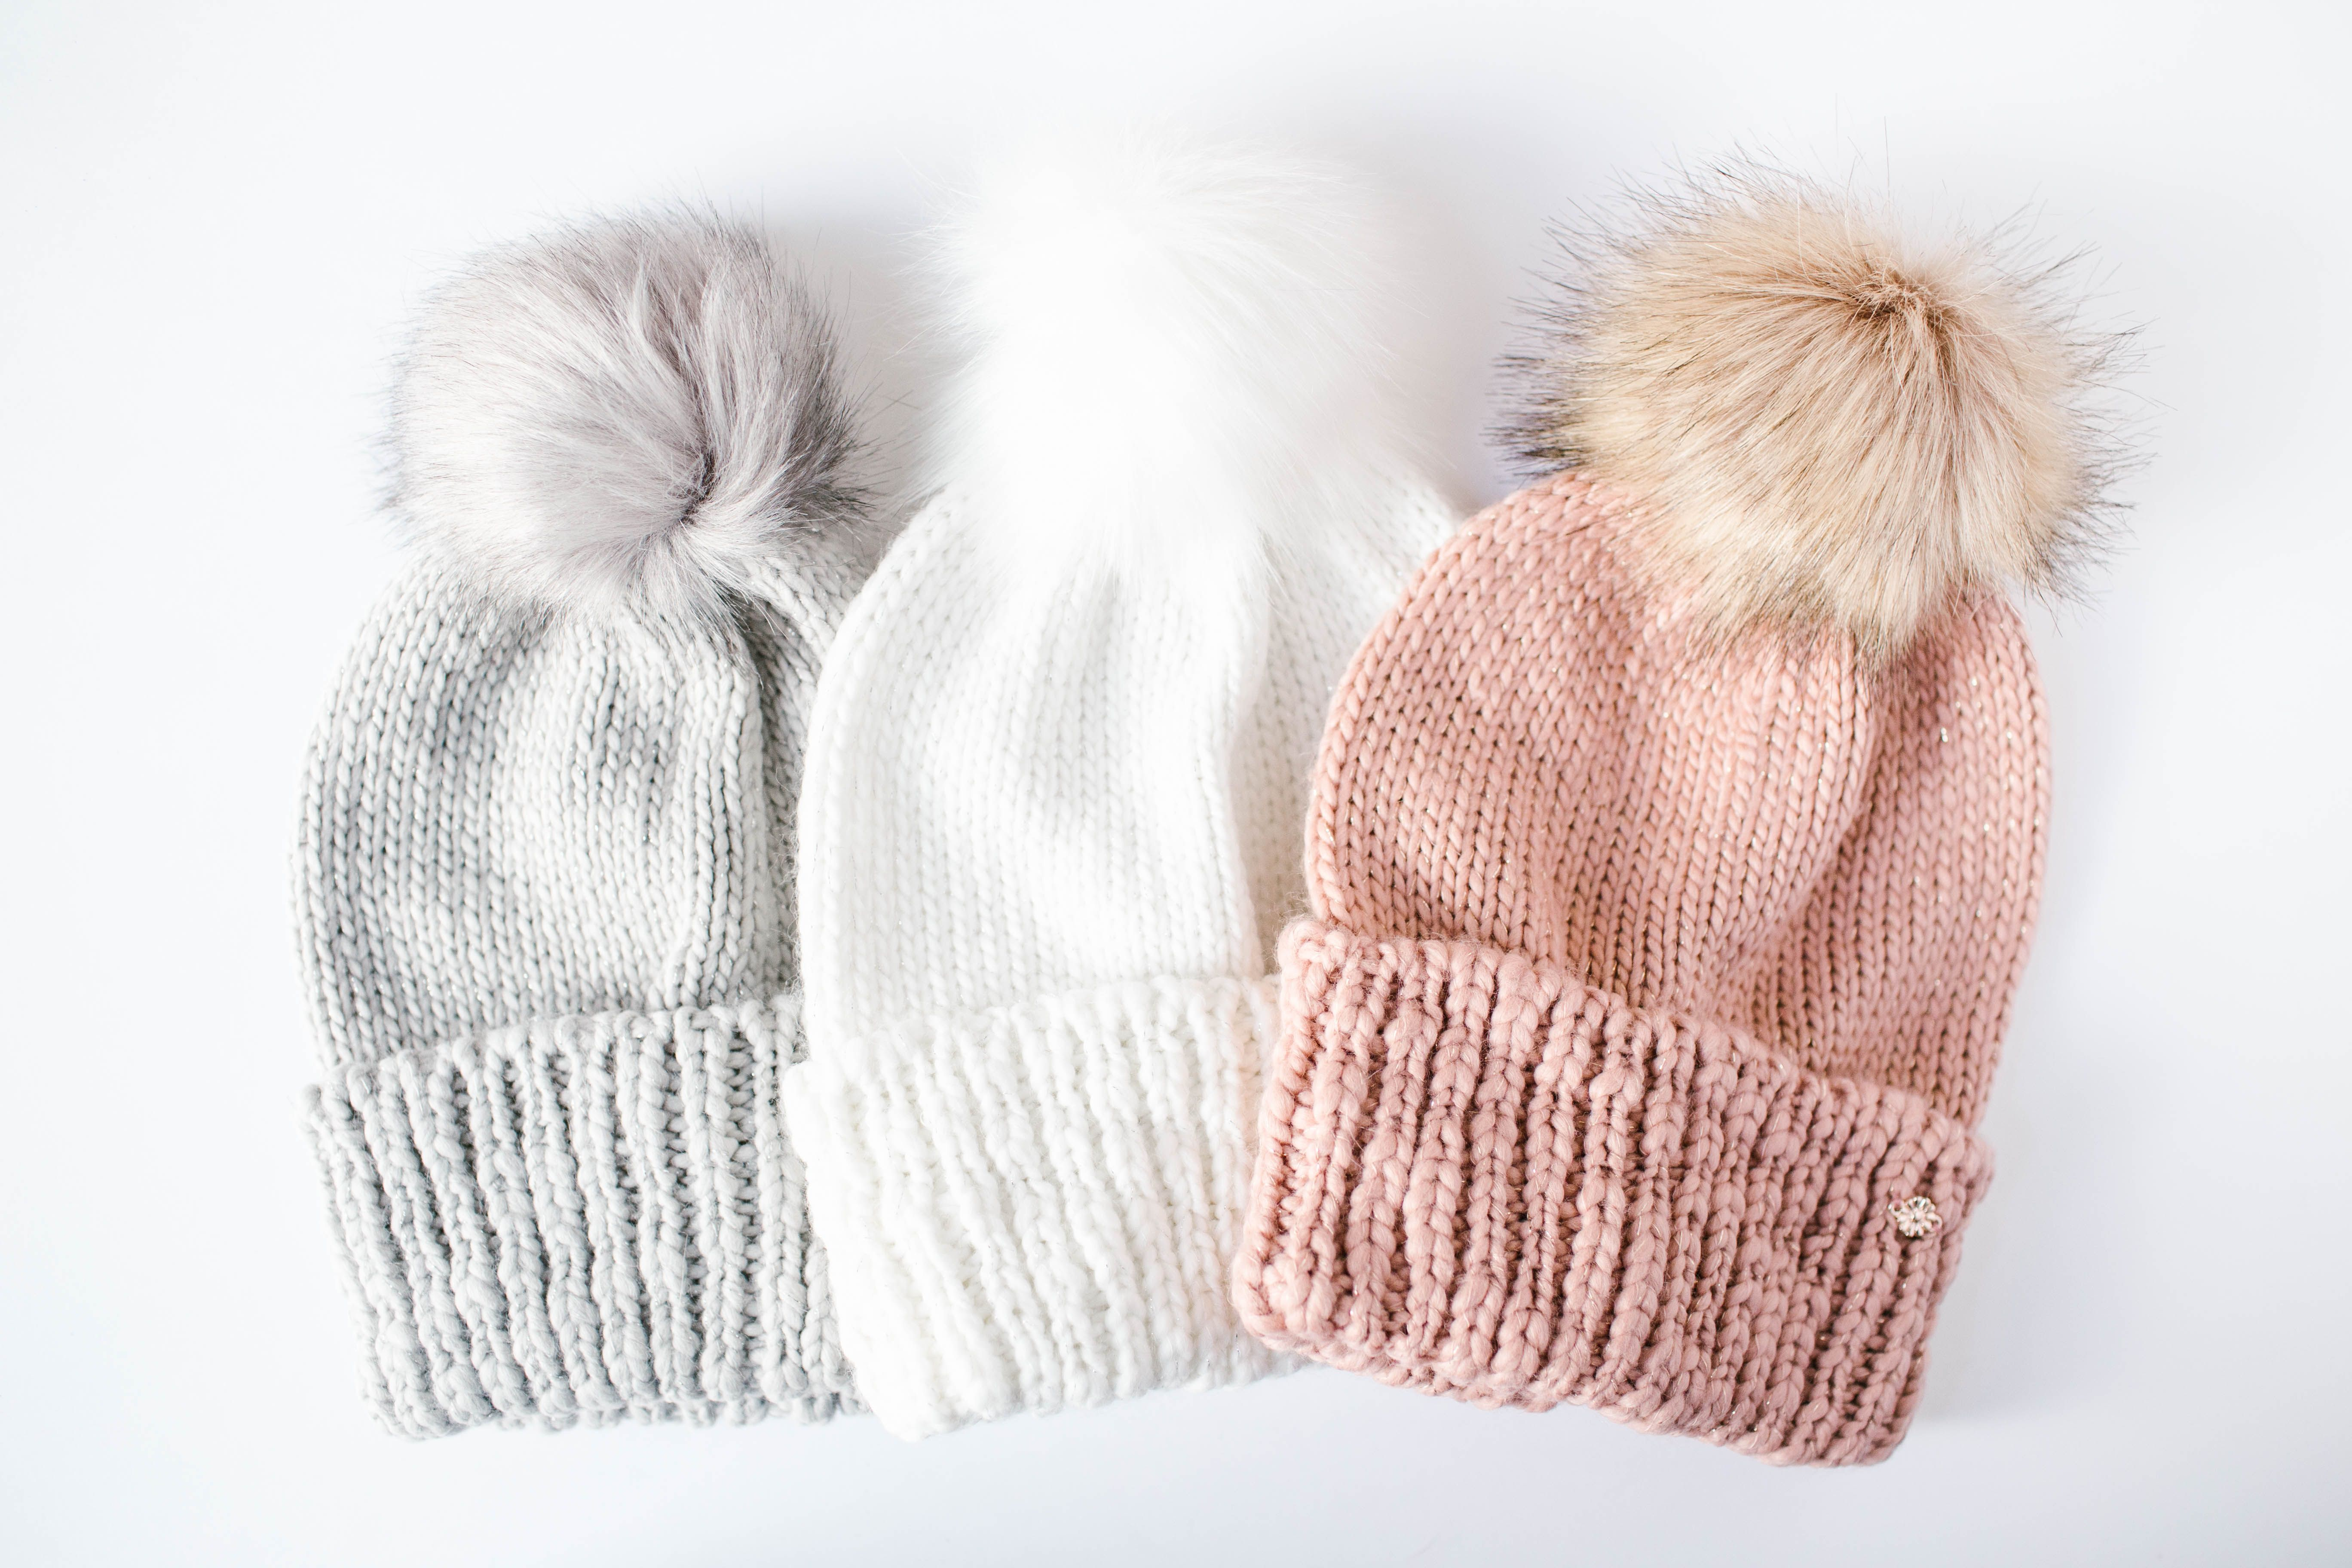 ee2ae89d143 Kohls Womens Winter Hats